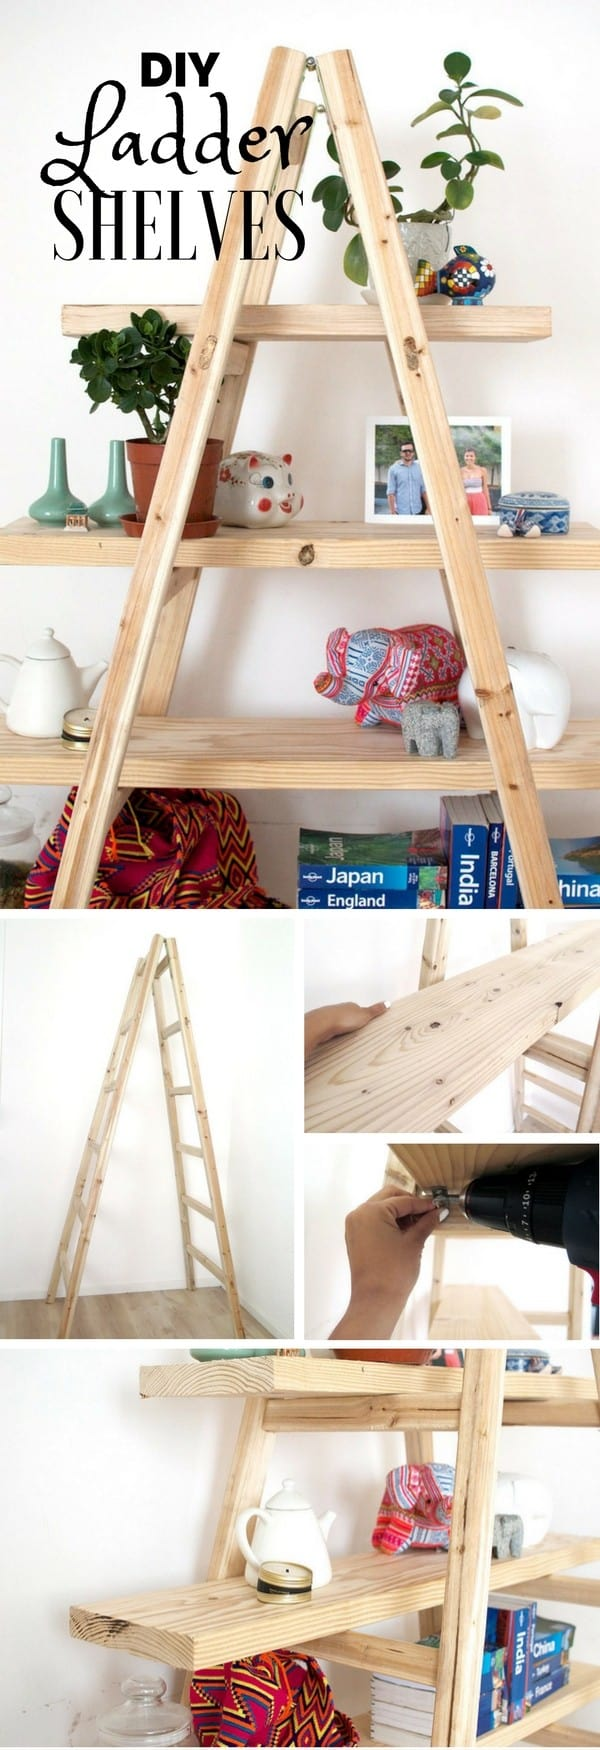 11 simple diy shelves for Old wooden ladder projects